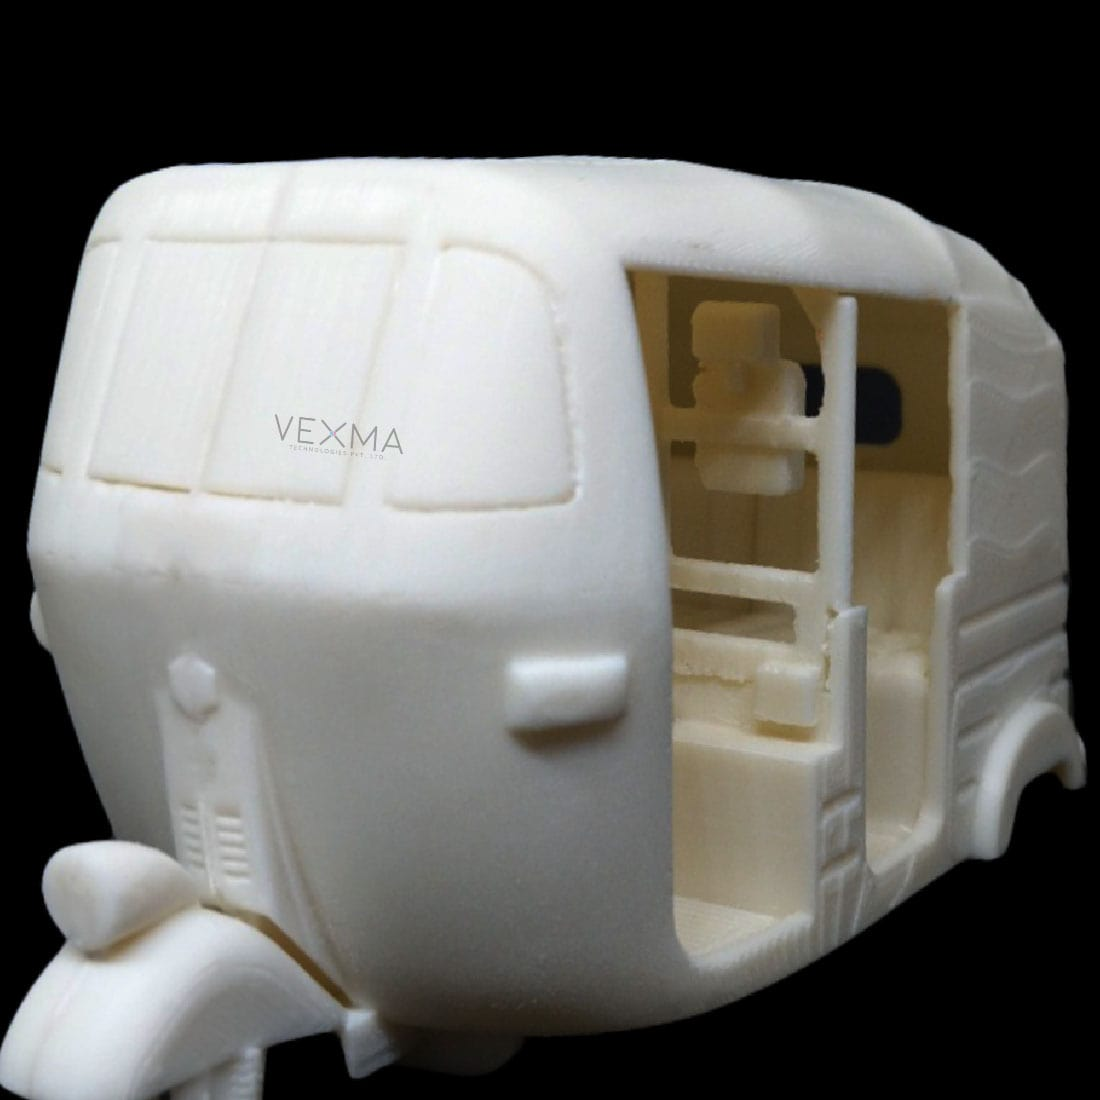 3dprinted-prototype-3d-auto-rickshaw-model-automotive-applications